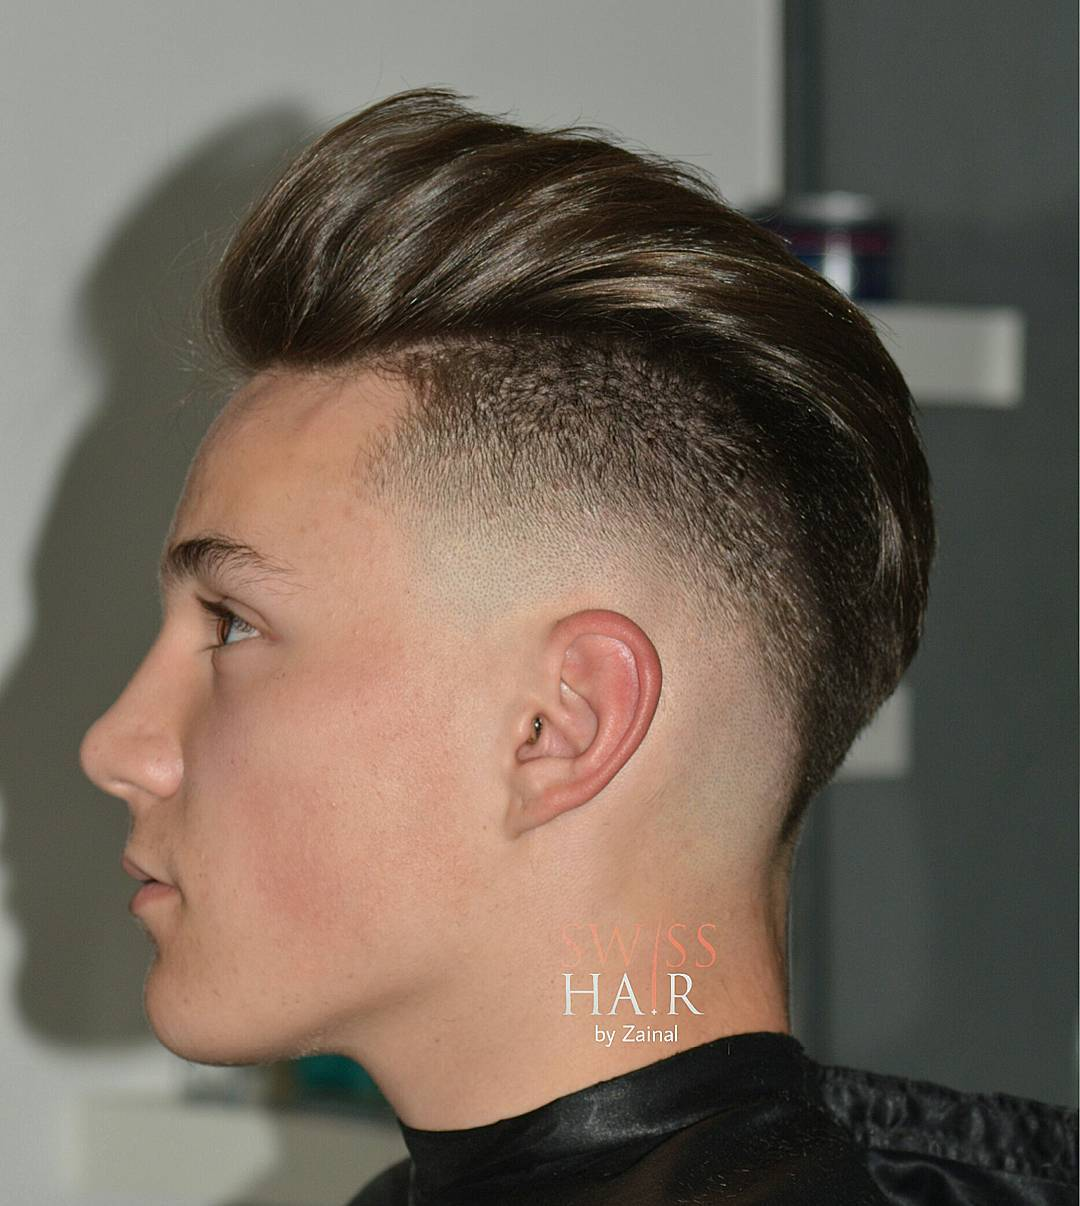 swisshairbyzainal-very-high-fade-medium-mens-haircut